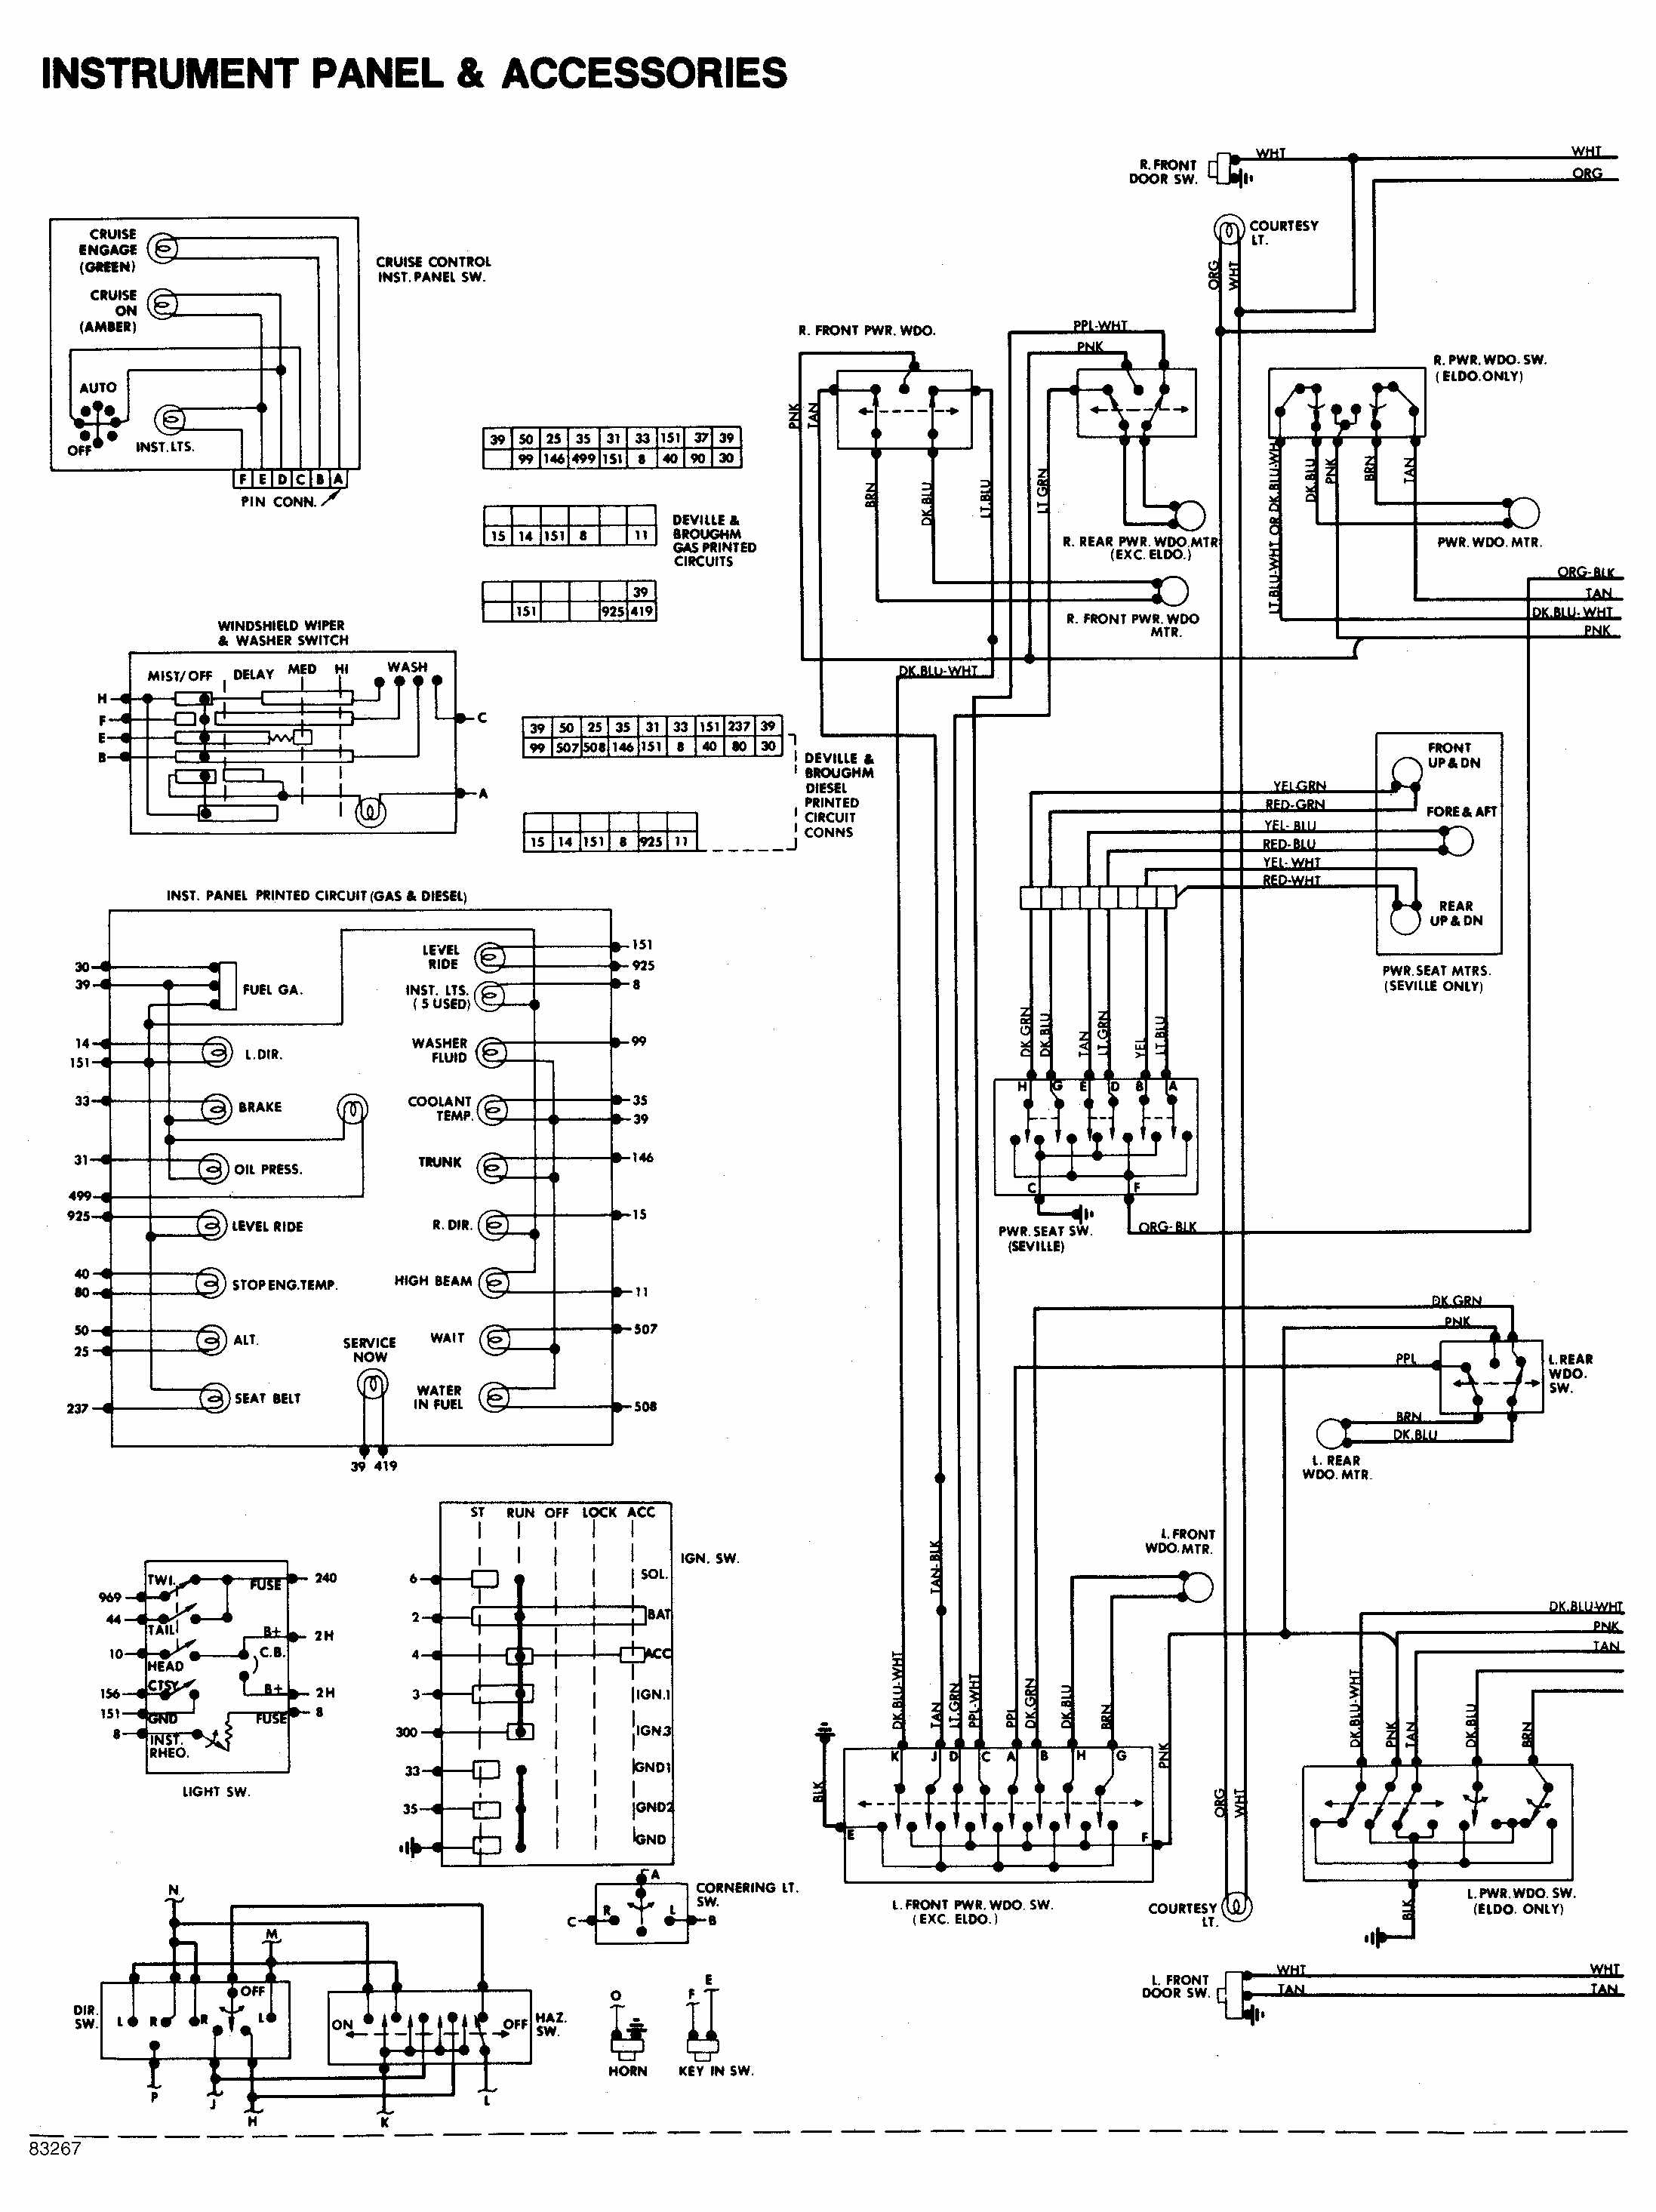 1968 Gmc Wiring Diagram Data 63 Impala Ignition Gm Wire 1964